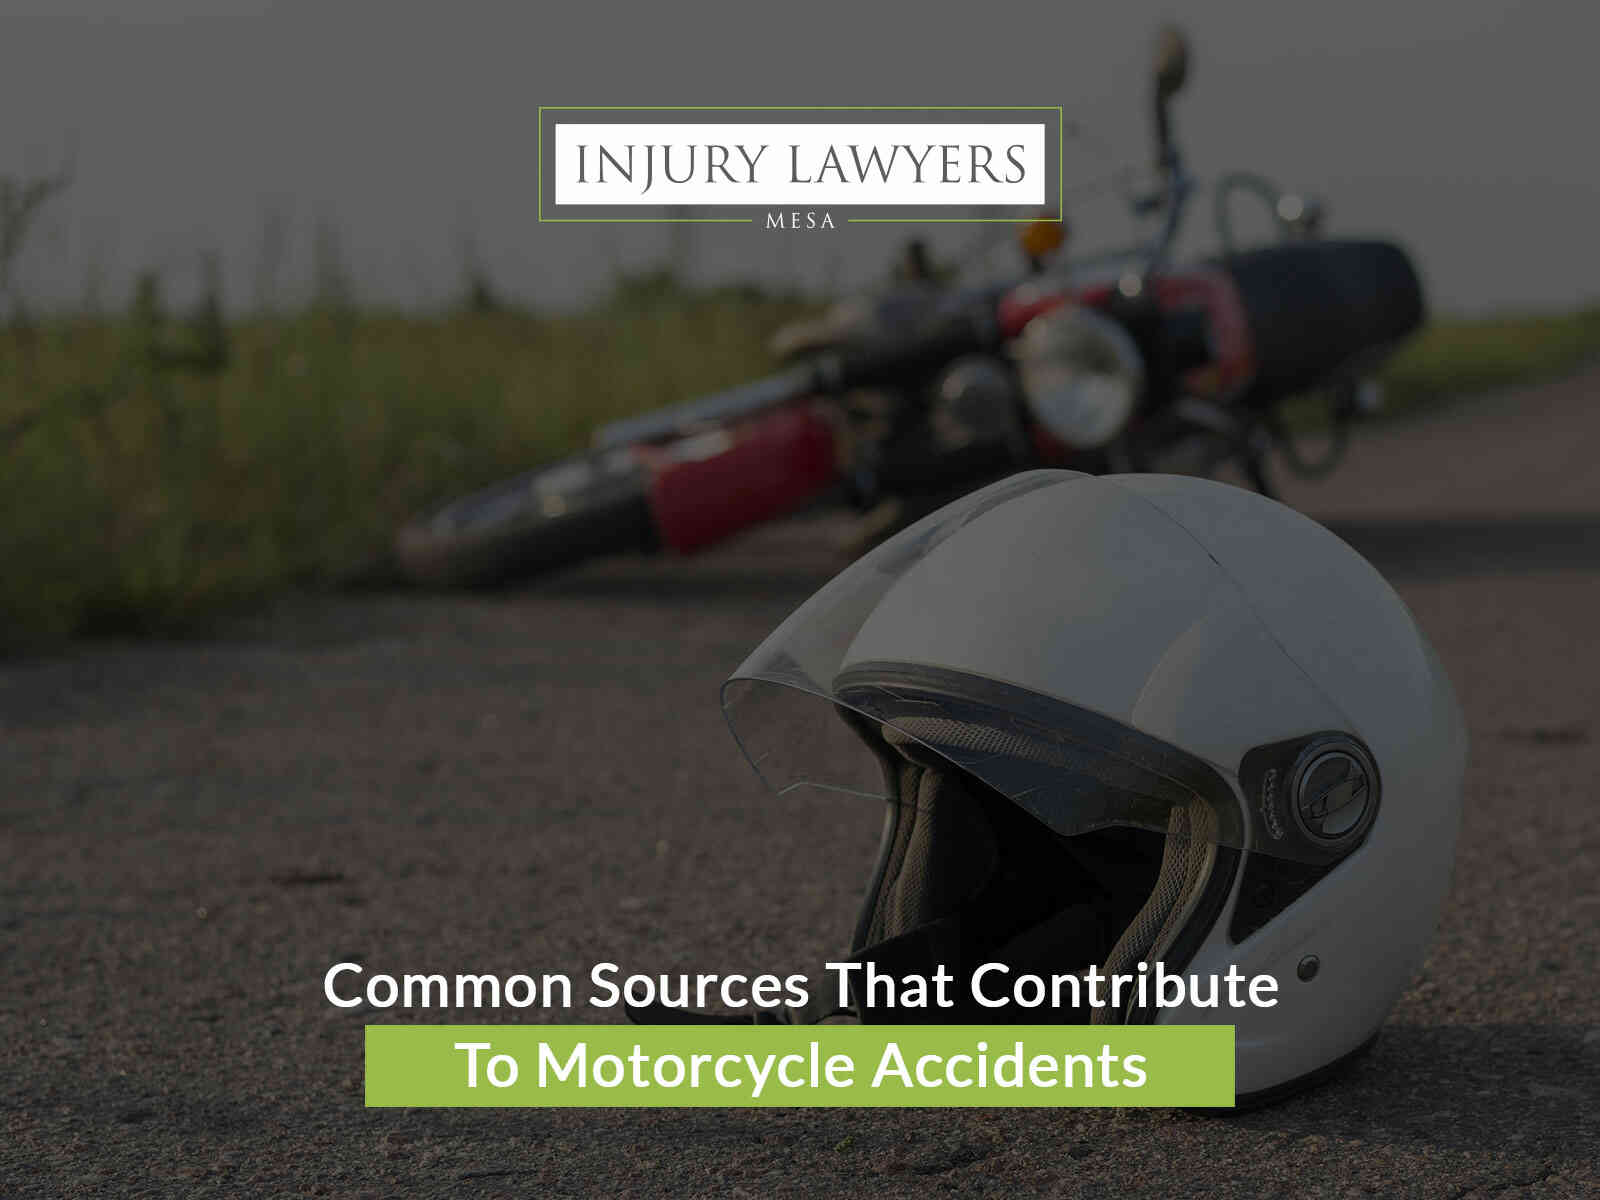 Common Sources That Contribute To Motorcycle Accidents